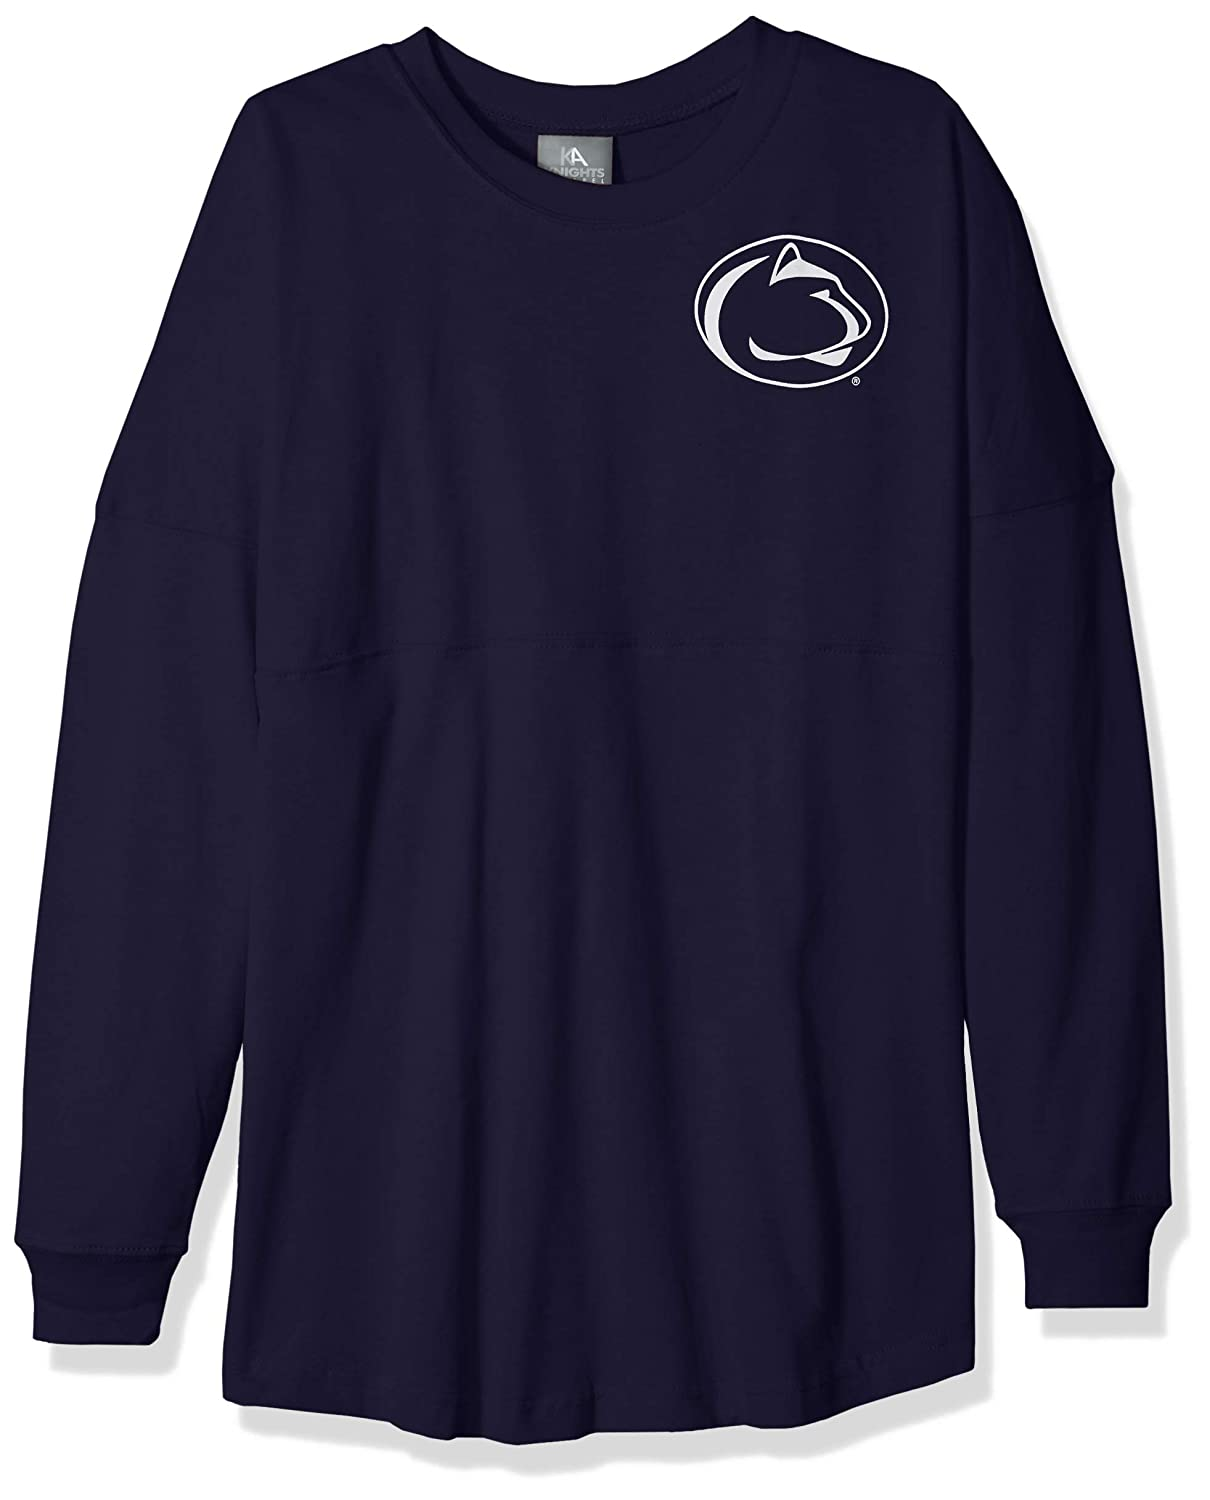 Large NCAA Penn State Nittany Lions Womens NCAA Womens Long Sleeve Mascot Style Teeknights Apparel NCAA Womens Long Sleeve Mascot Style Tee Sports Navy